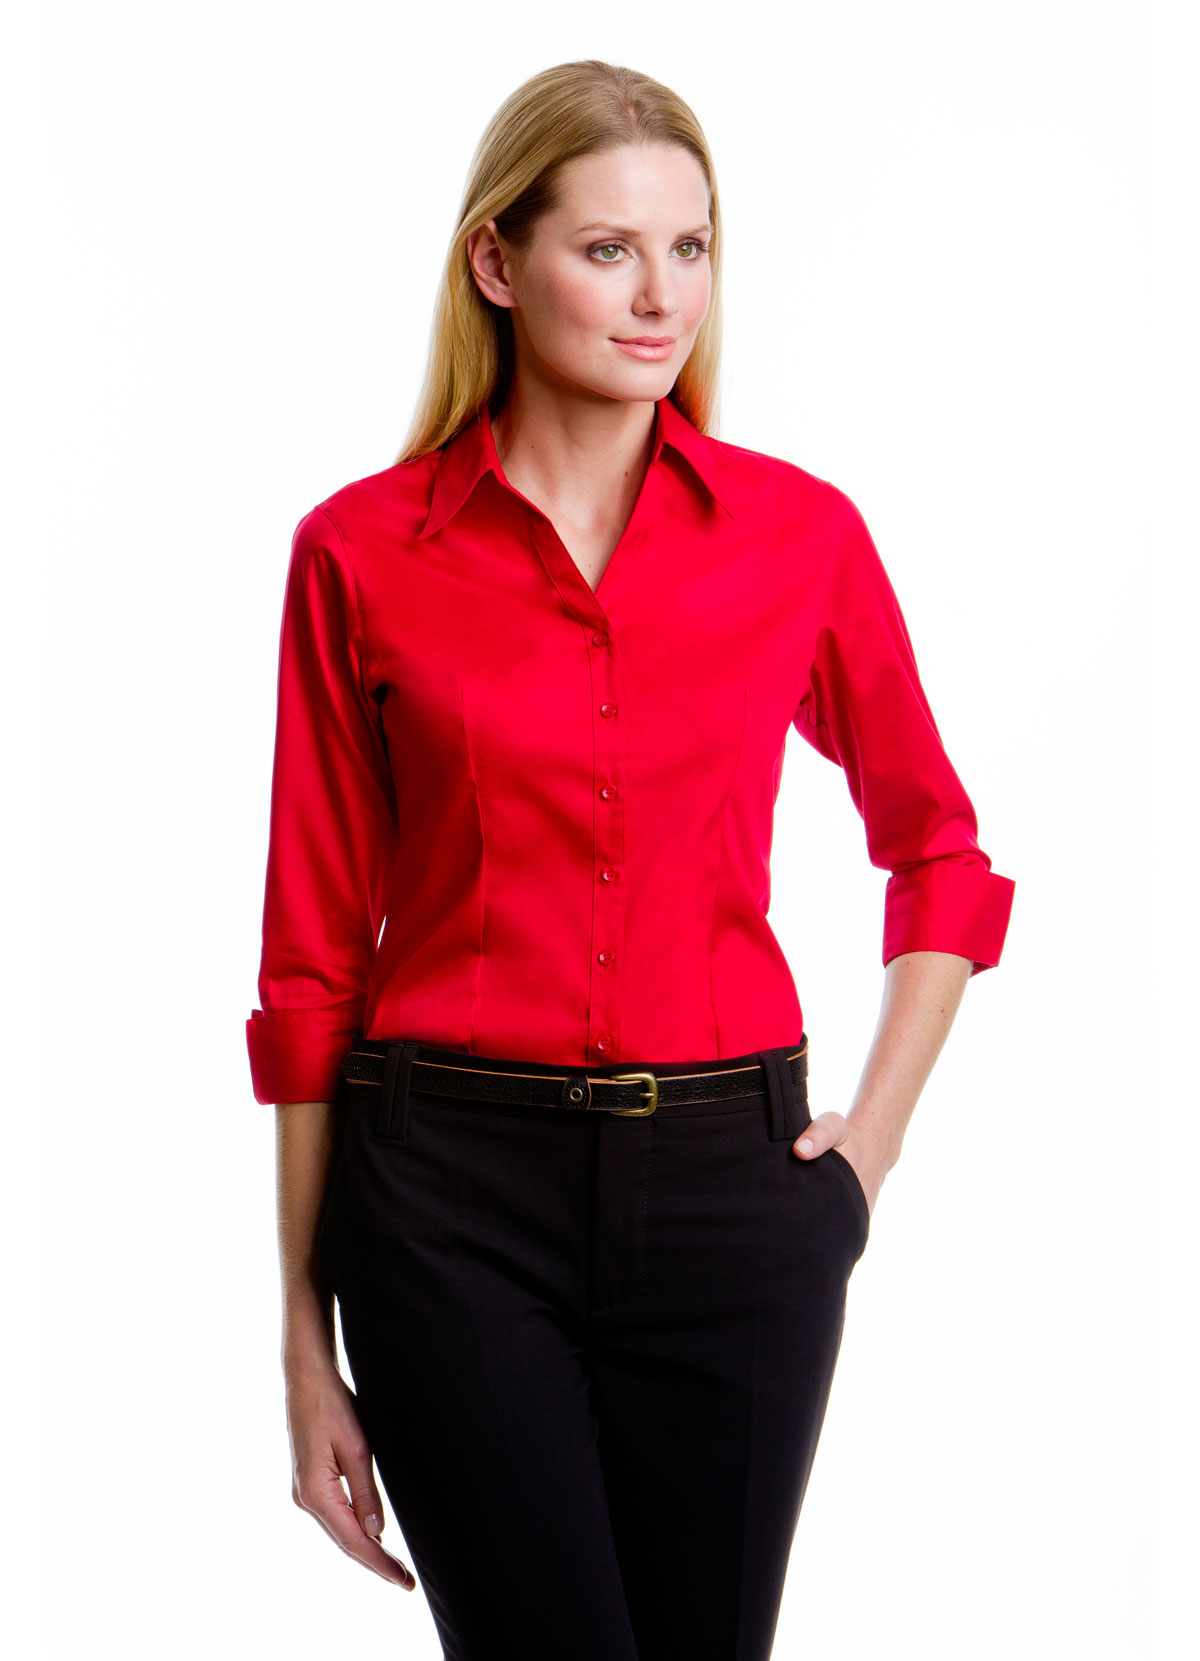 KK710 Women's Corporate Oxford Shirt 3/4 Sleeve